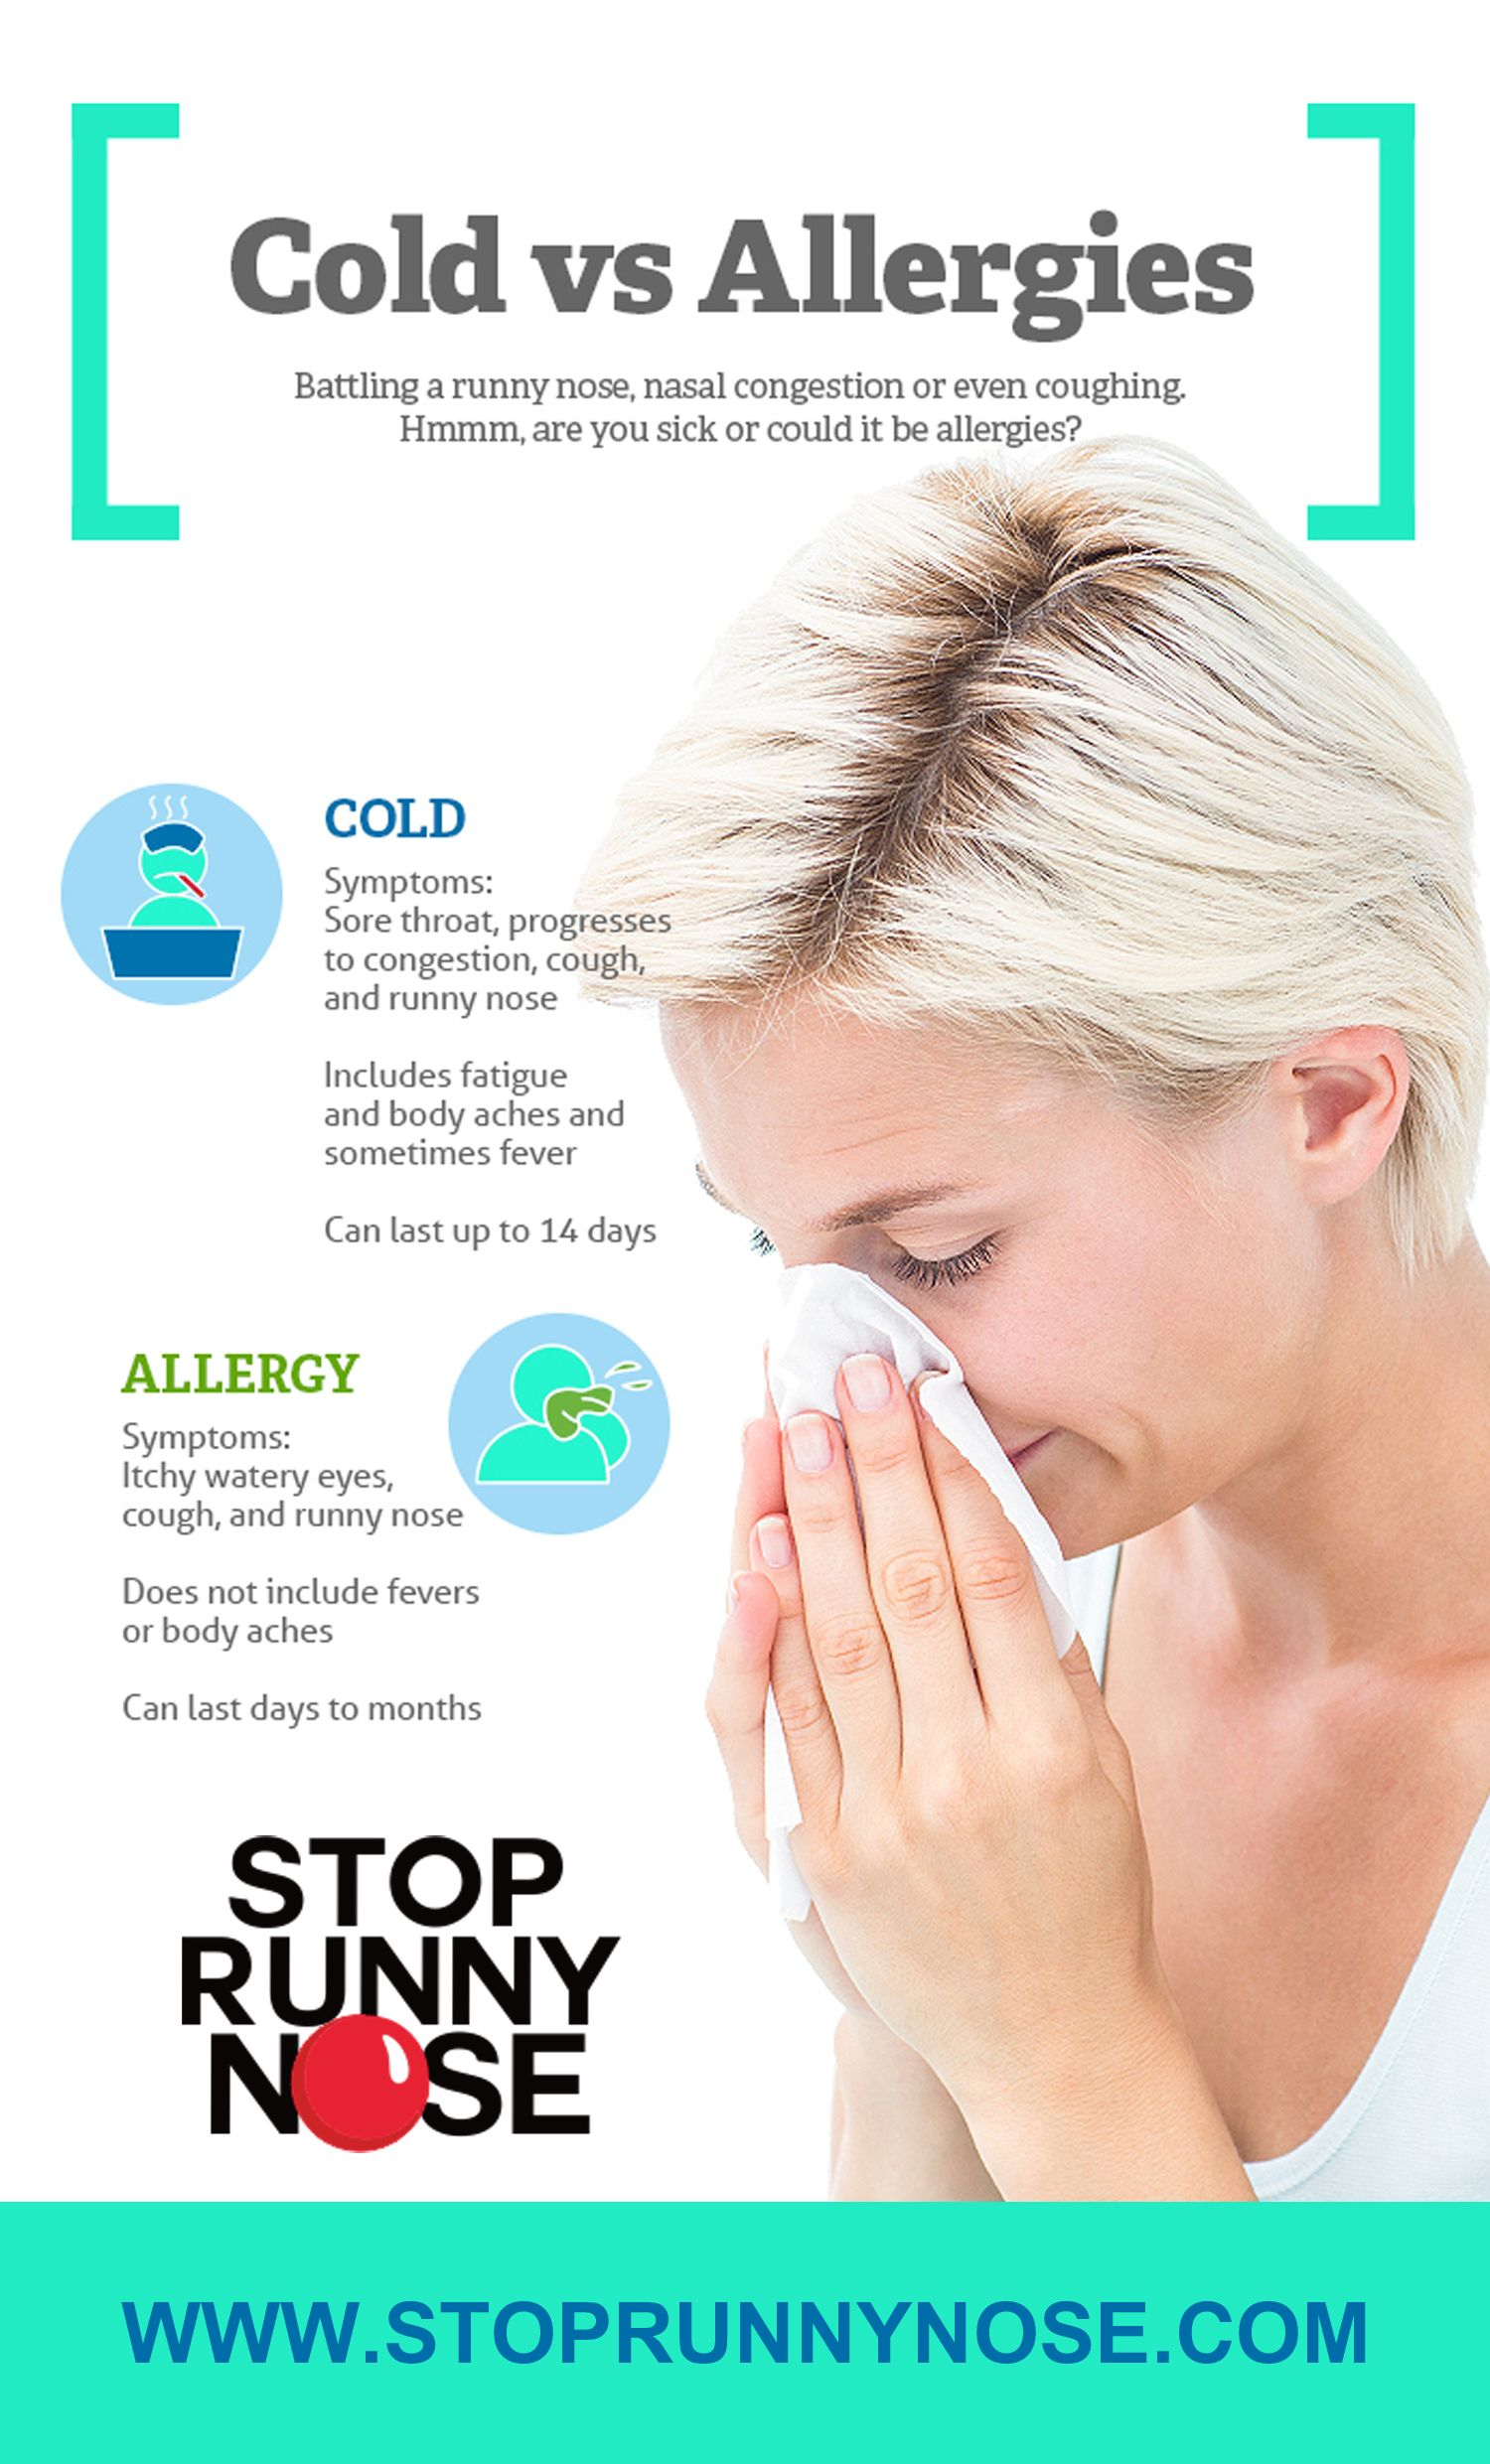 How To Stop A Runny Nose Natural Ways And Home Remes